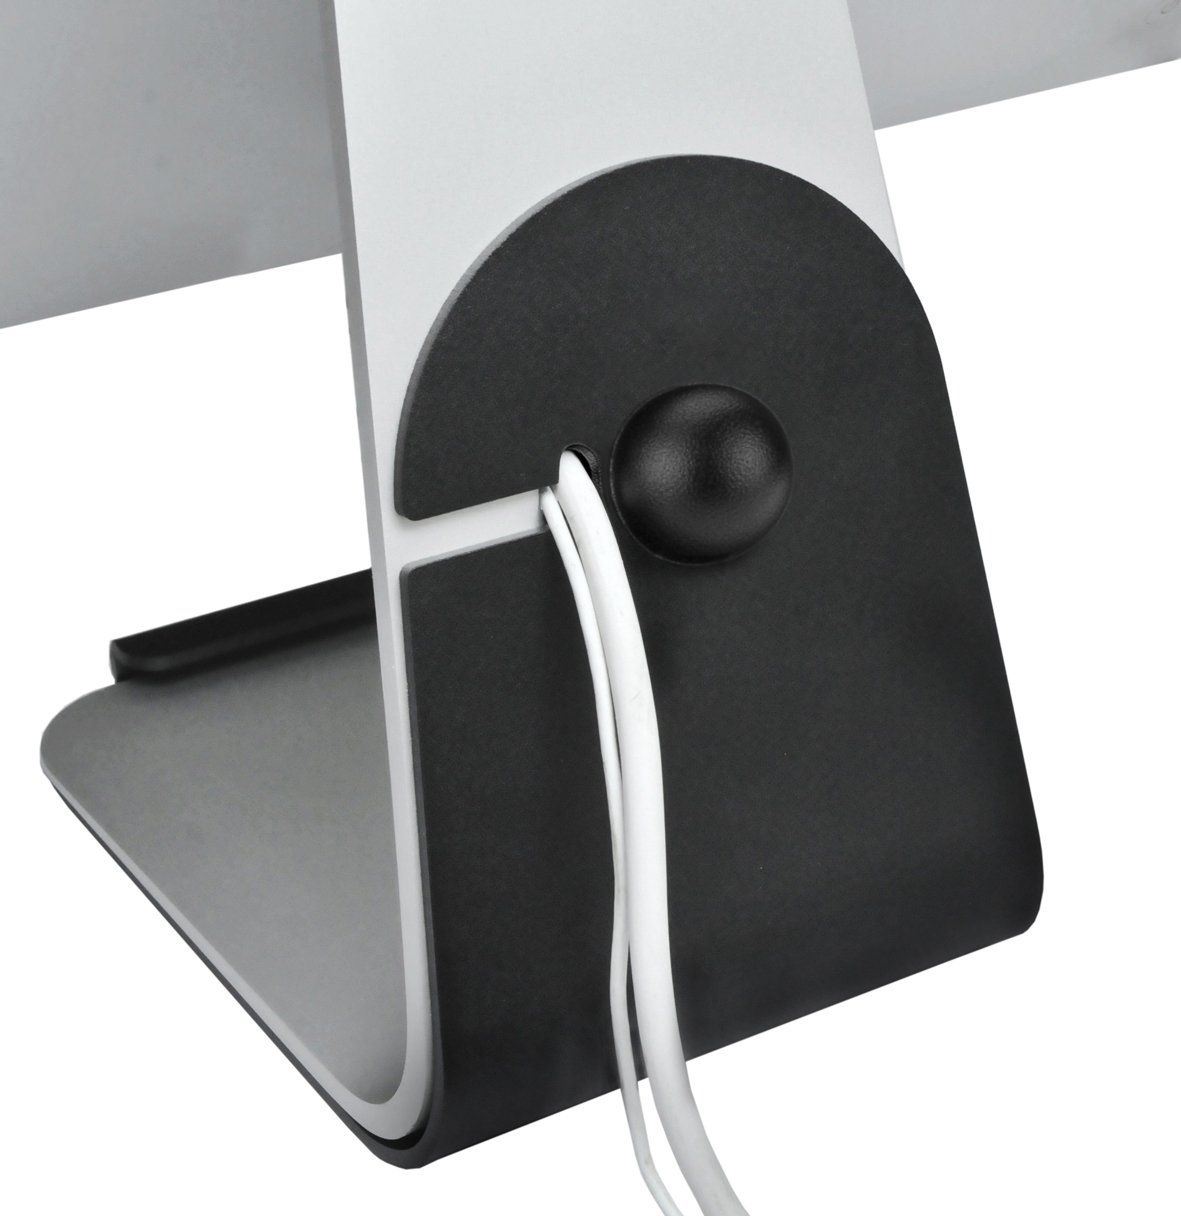 SecurityXtra SecureDOCK UNO Low Profile Security Lock Mount for iPad Pro White by SecurityXtra (Image #2)